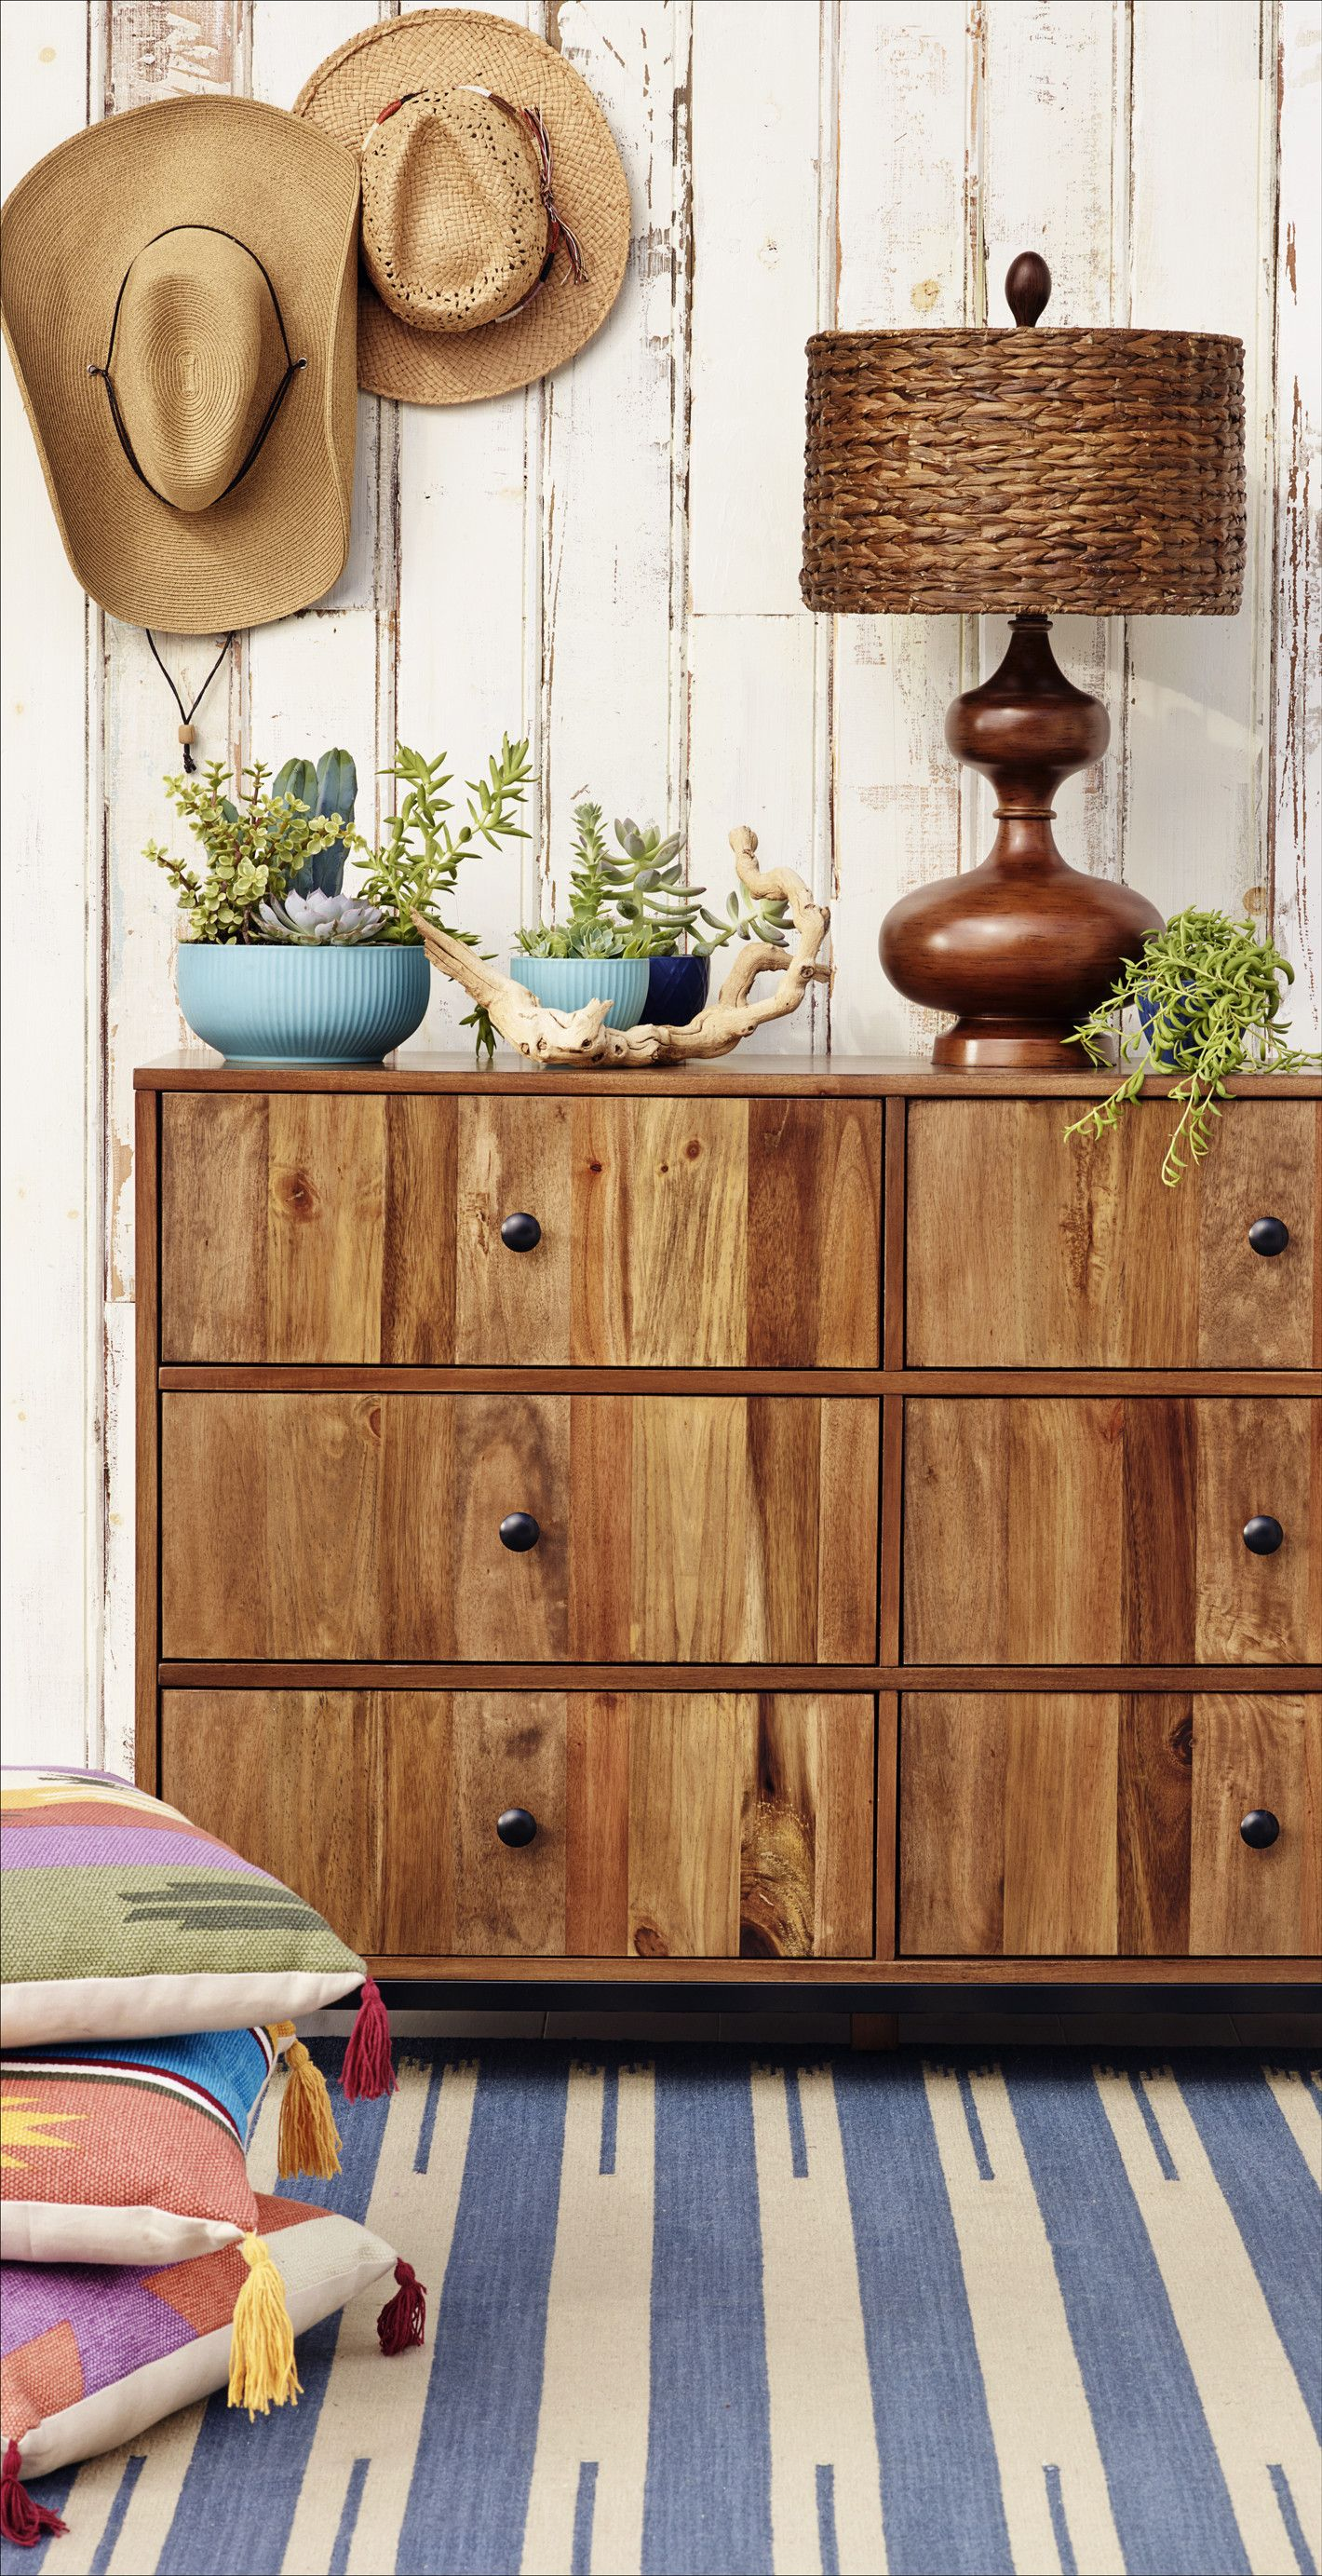 Southwest Bedroom Furniture Now This Is What We Call Paradise Create Your Own Southwest